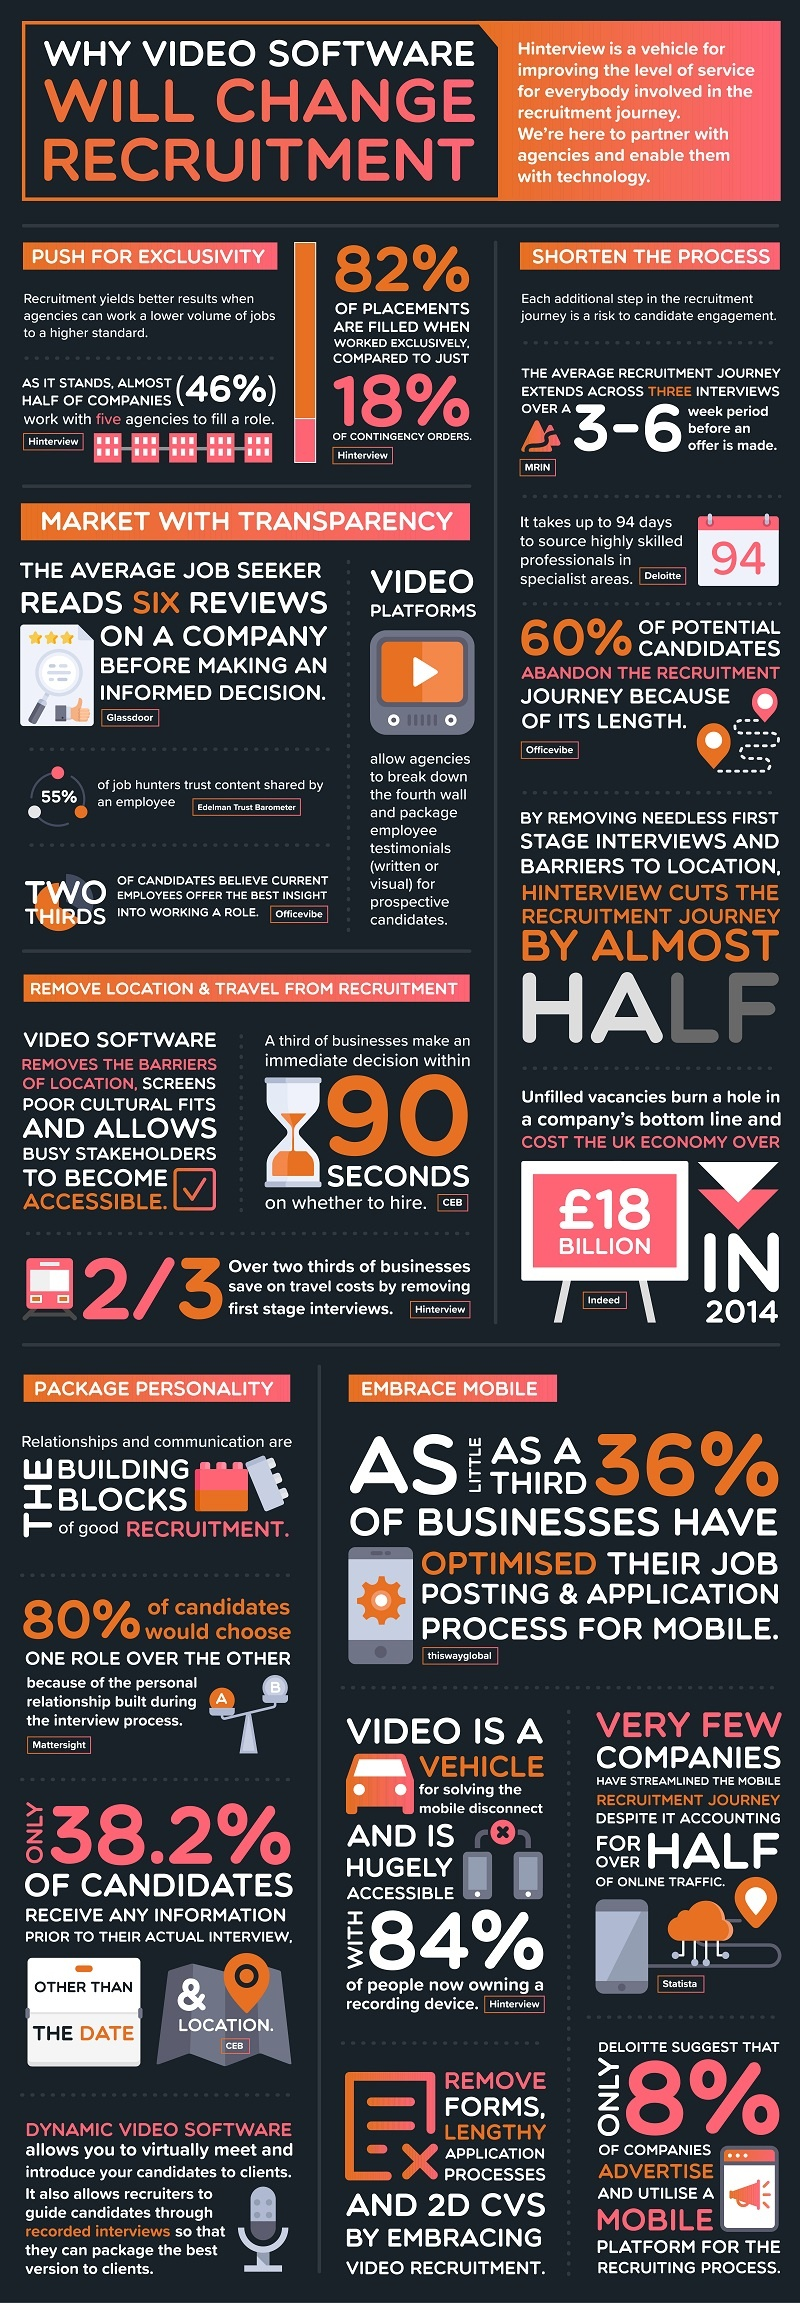 [infographic] Innovations in Video Software are Changing Recruitment